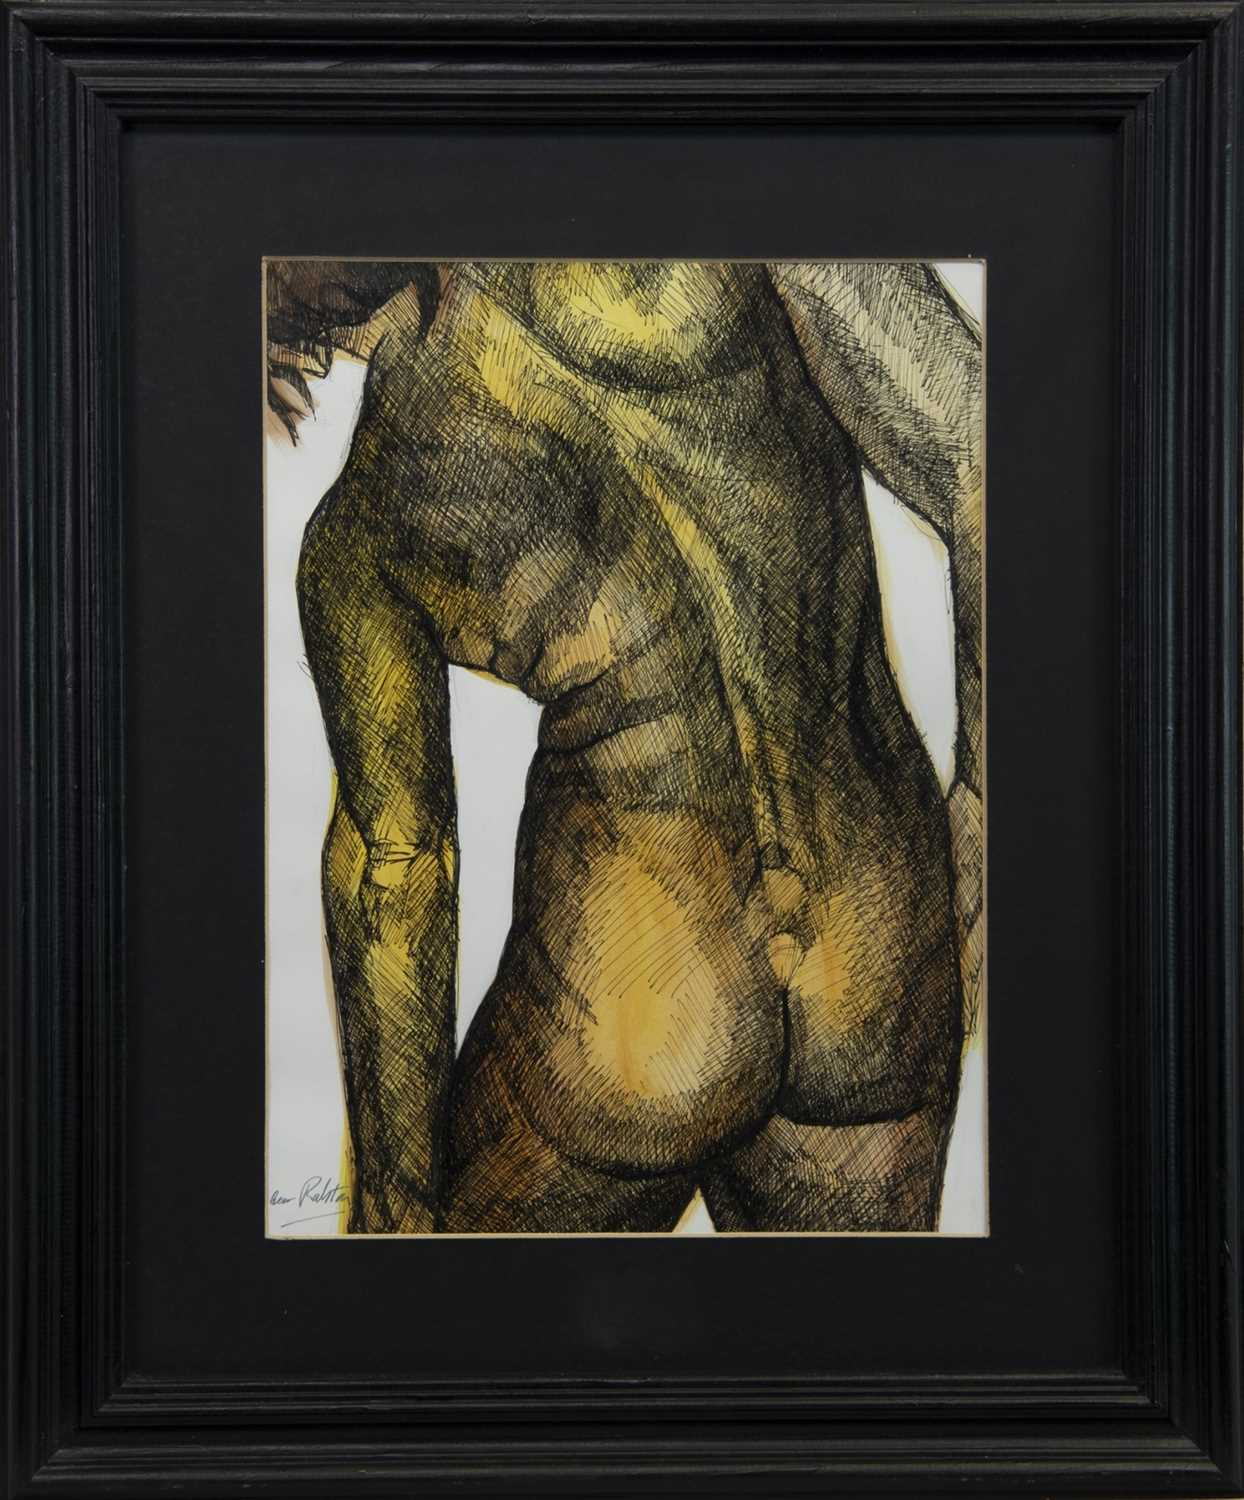 Lot 77 - TORSO, A MIXED MEDIA BY GREER RALSTON